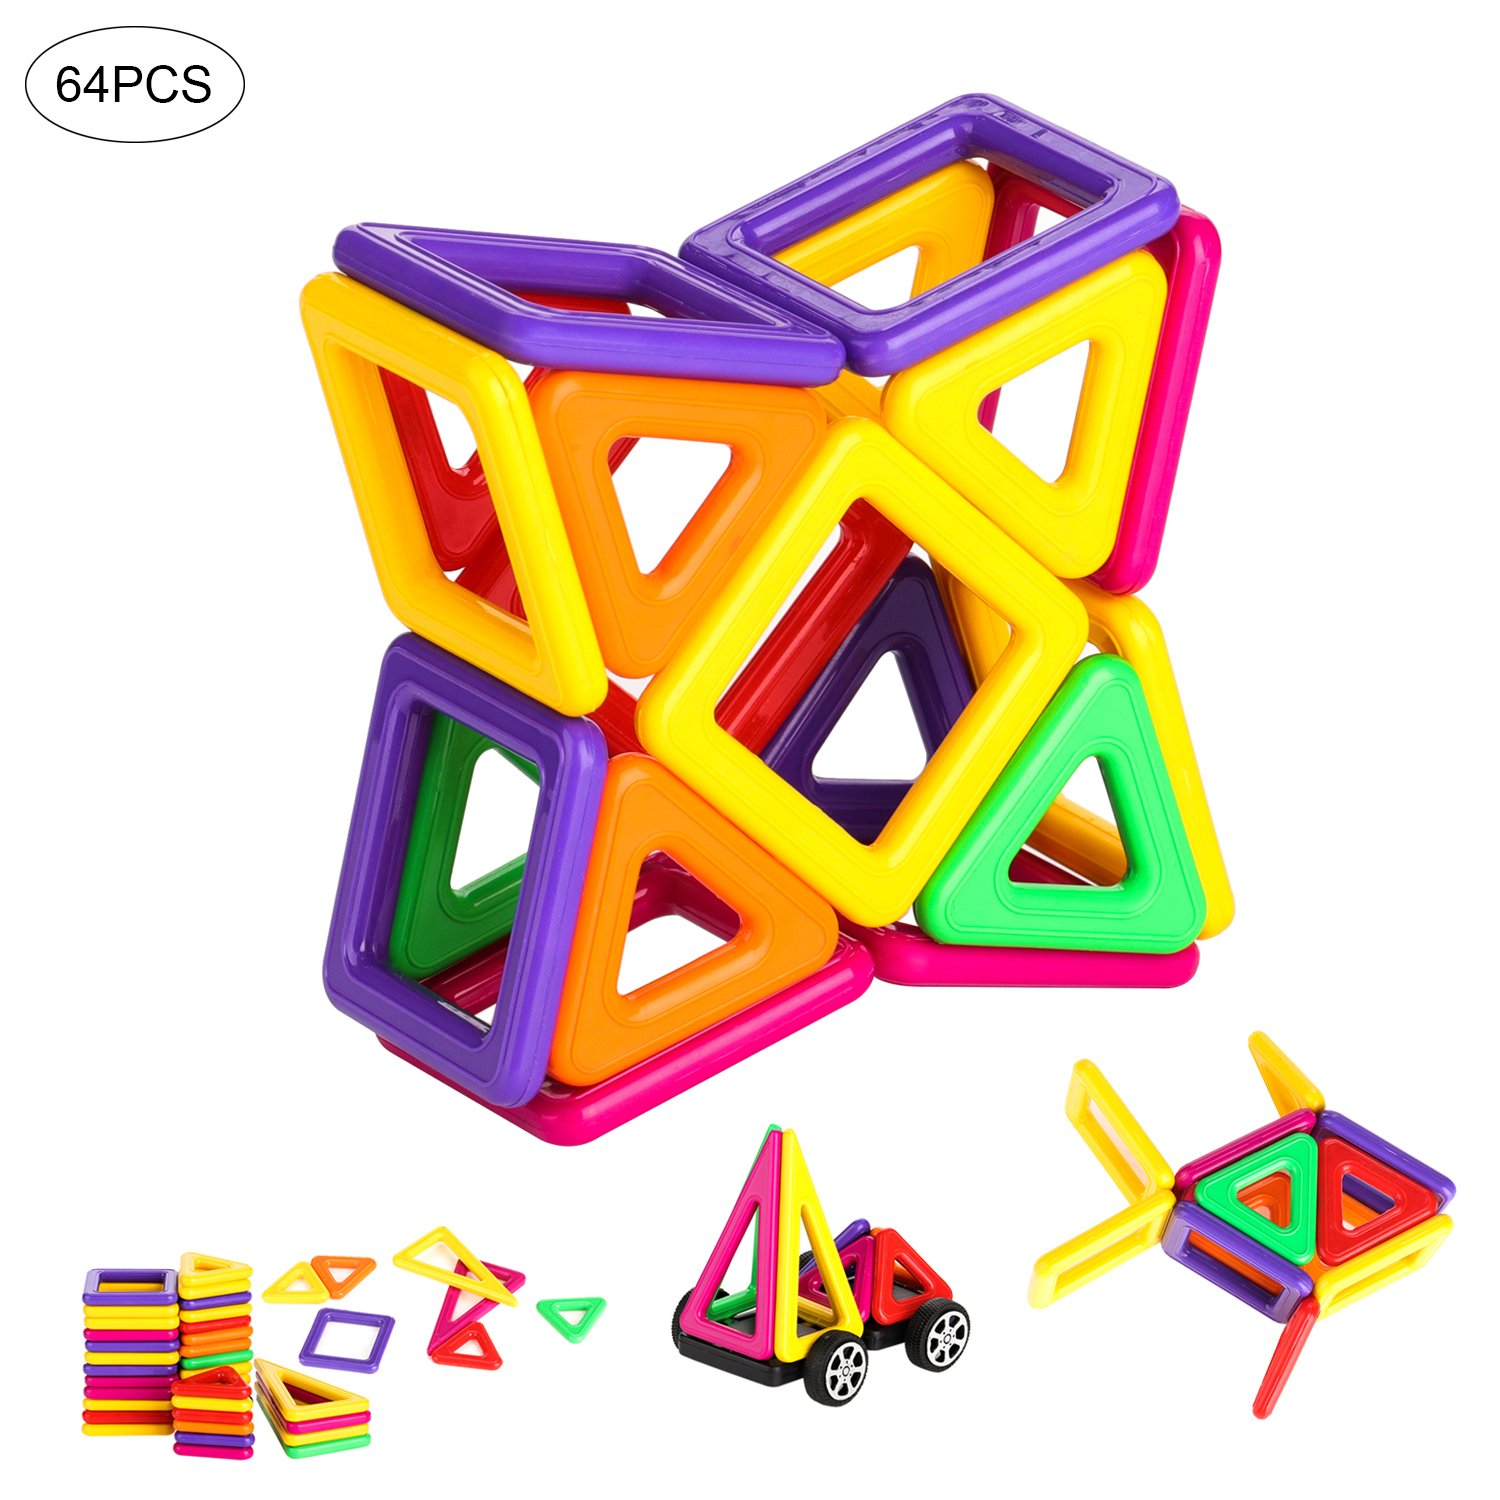 64 Pcs Magnetic Building Blocks Set for Kids, Educational Stacking Tiles Building Construction Toddler Creative Imagination Development Toys for Boys and Girls Kanical